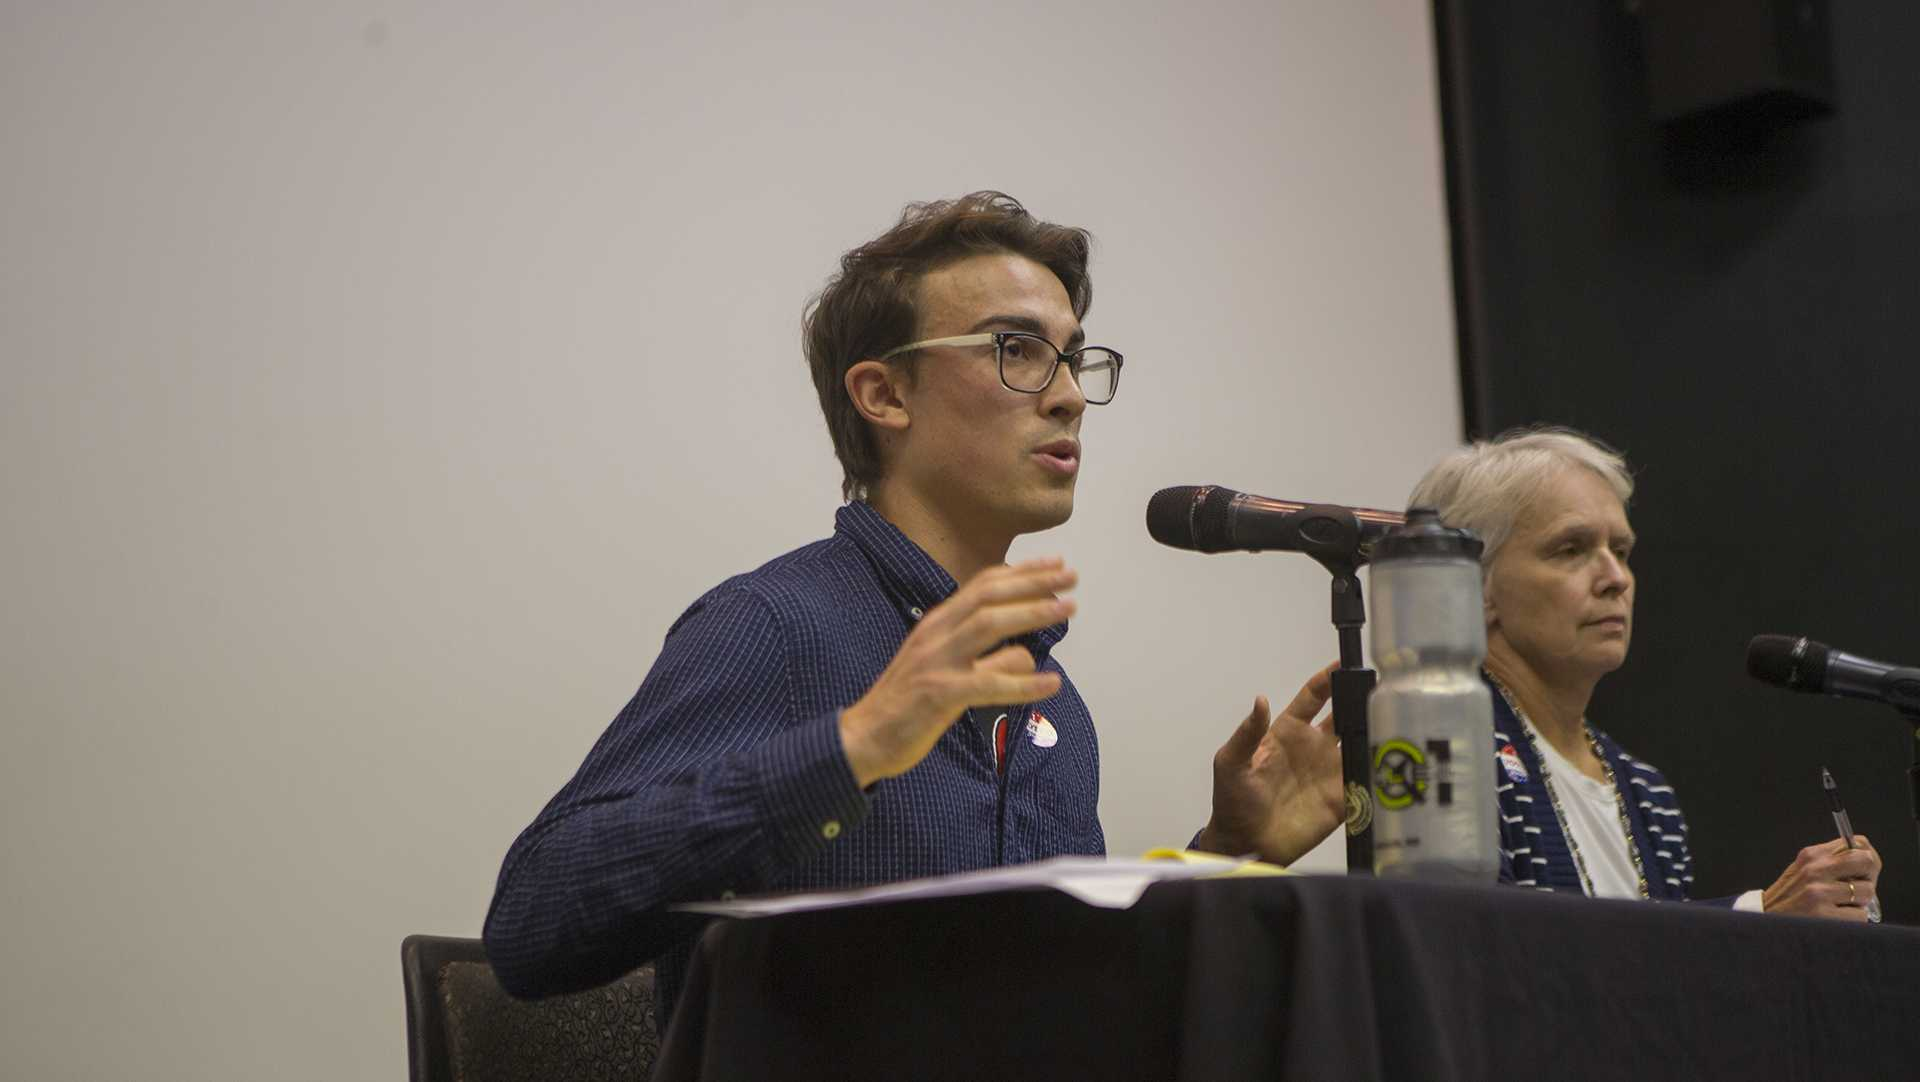 Iowa City City Council District B candidate Ryan Hall speaks during the UISG City Council Forum in the IMU on Wednesday, Oct. 18, 2017. The event gave students and community members the opportunity to ask city council candidates about various issues. (Lily Smith/The Daily Iowan)